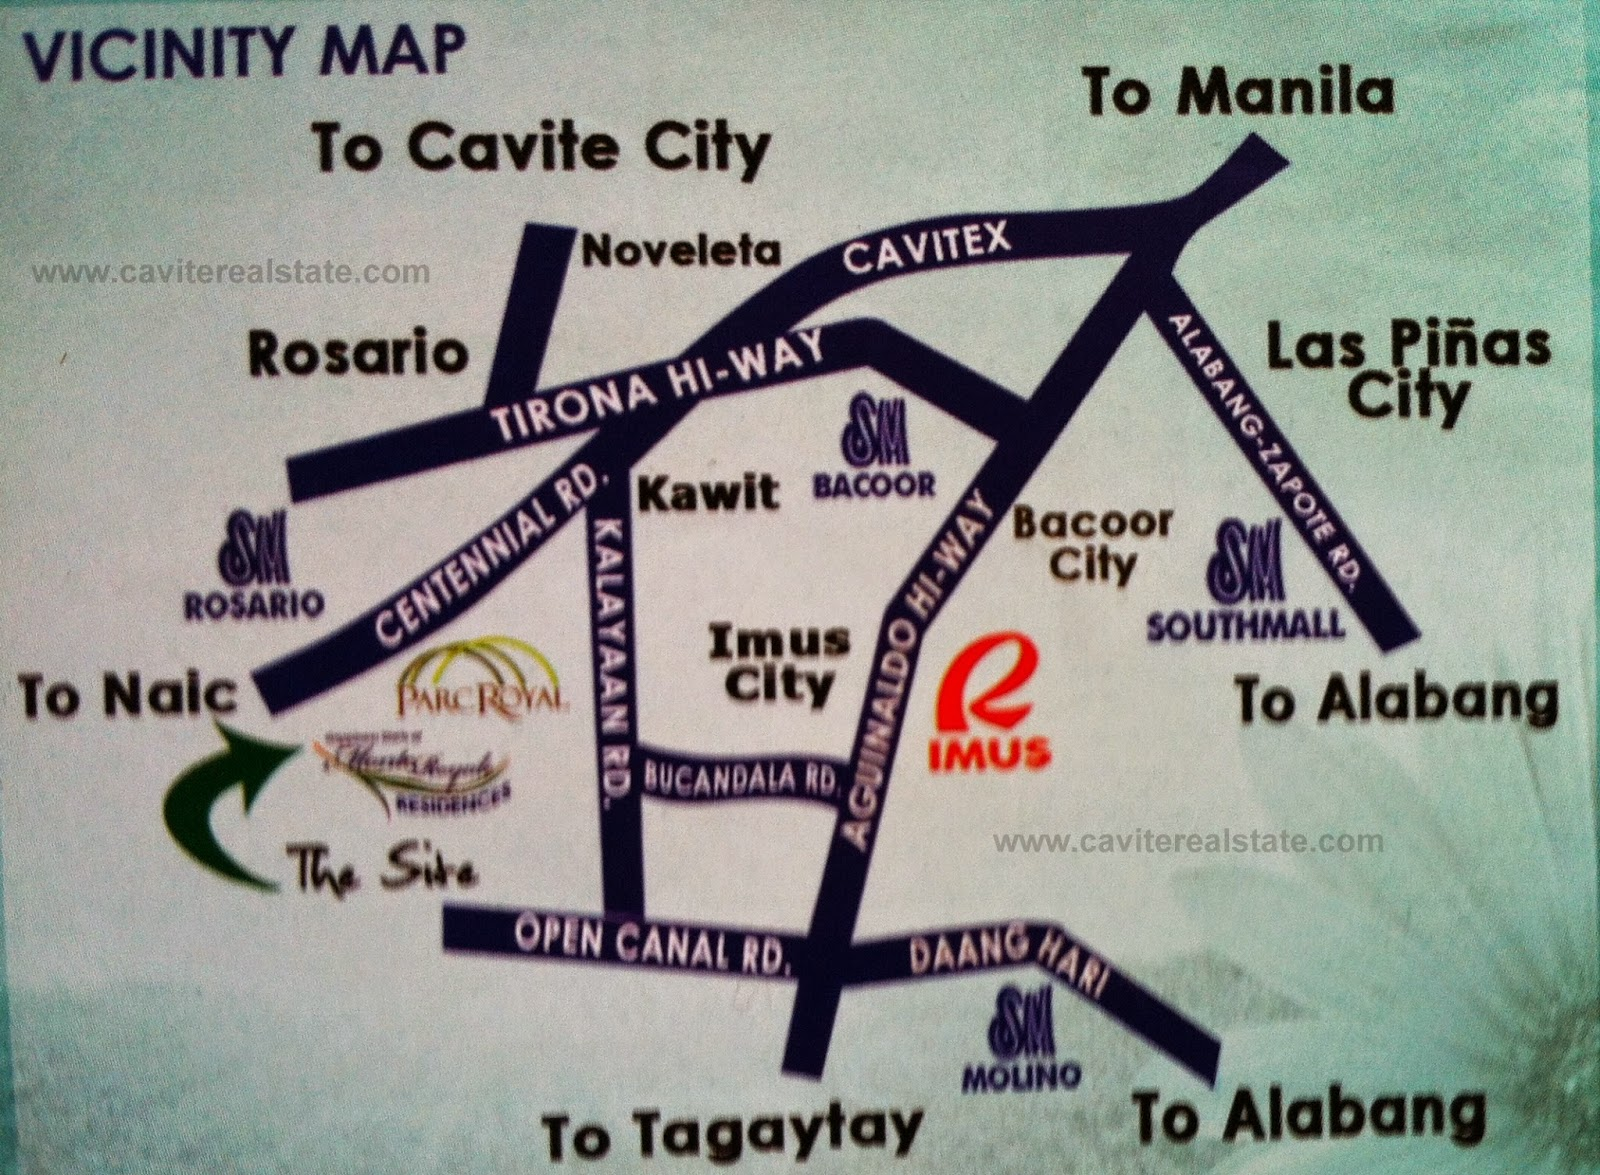 Monte Royale Residences - Location & Vicinity